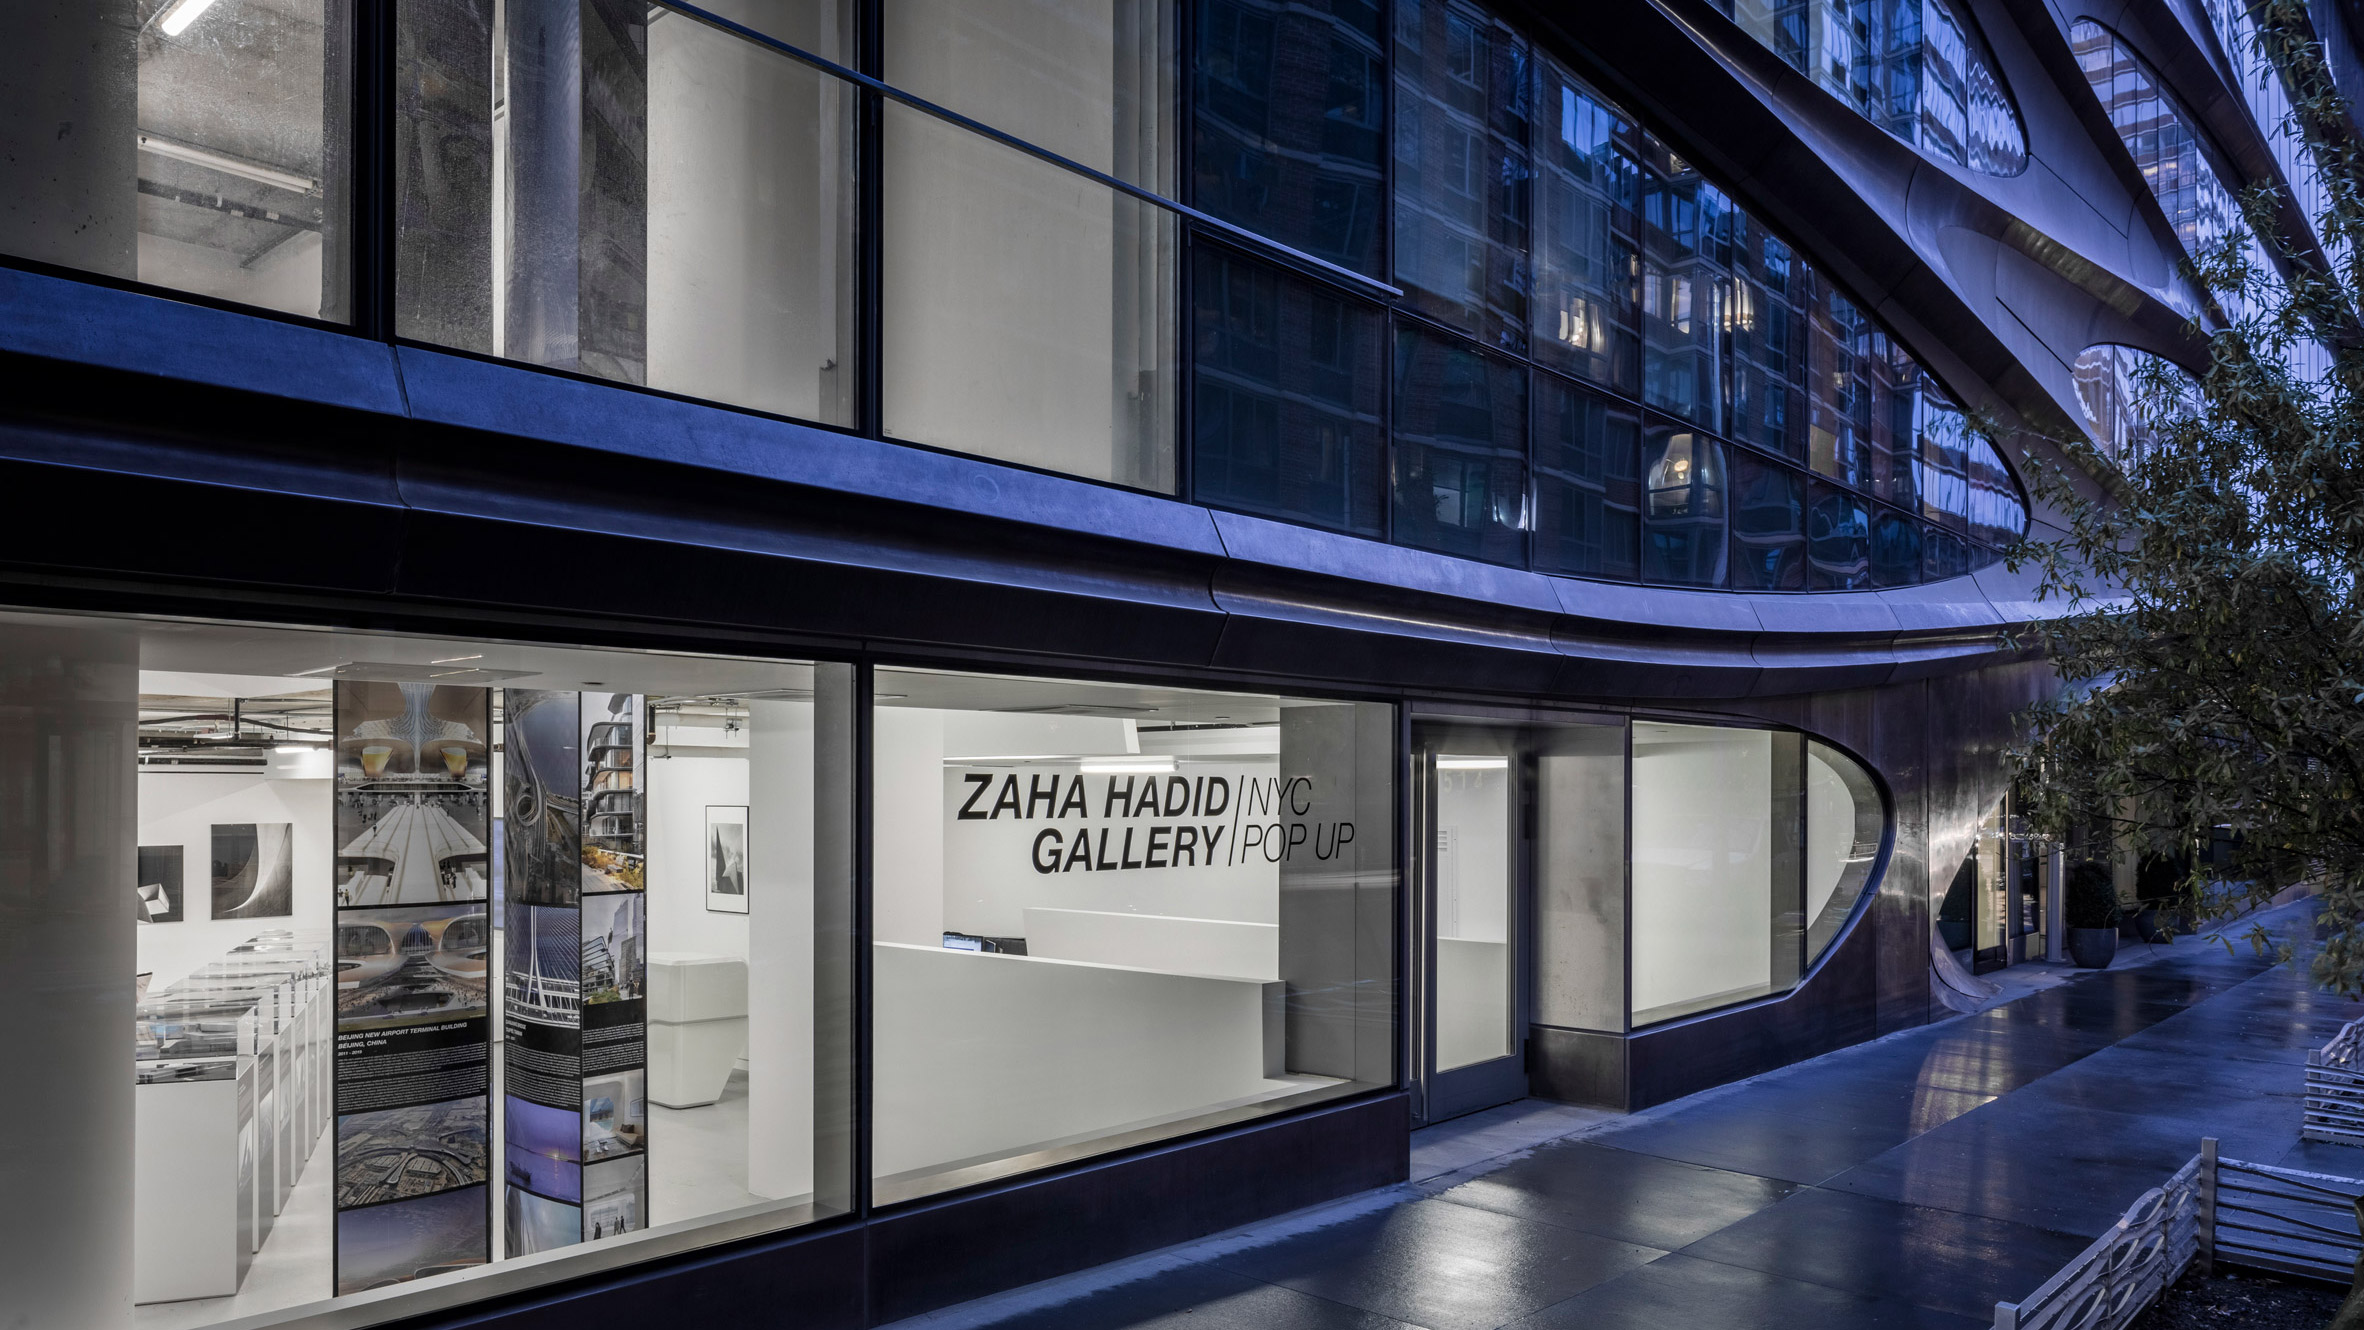 Zaha Hadid Architects opens pop-up gallery in New York City